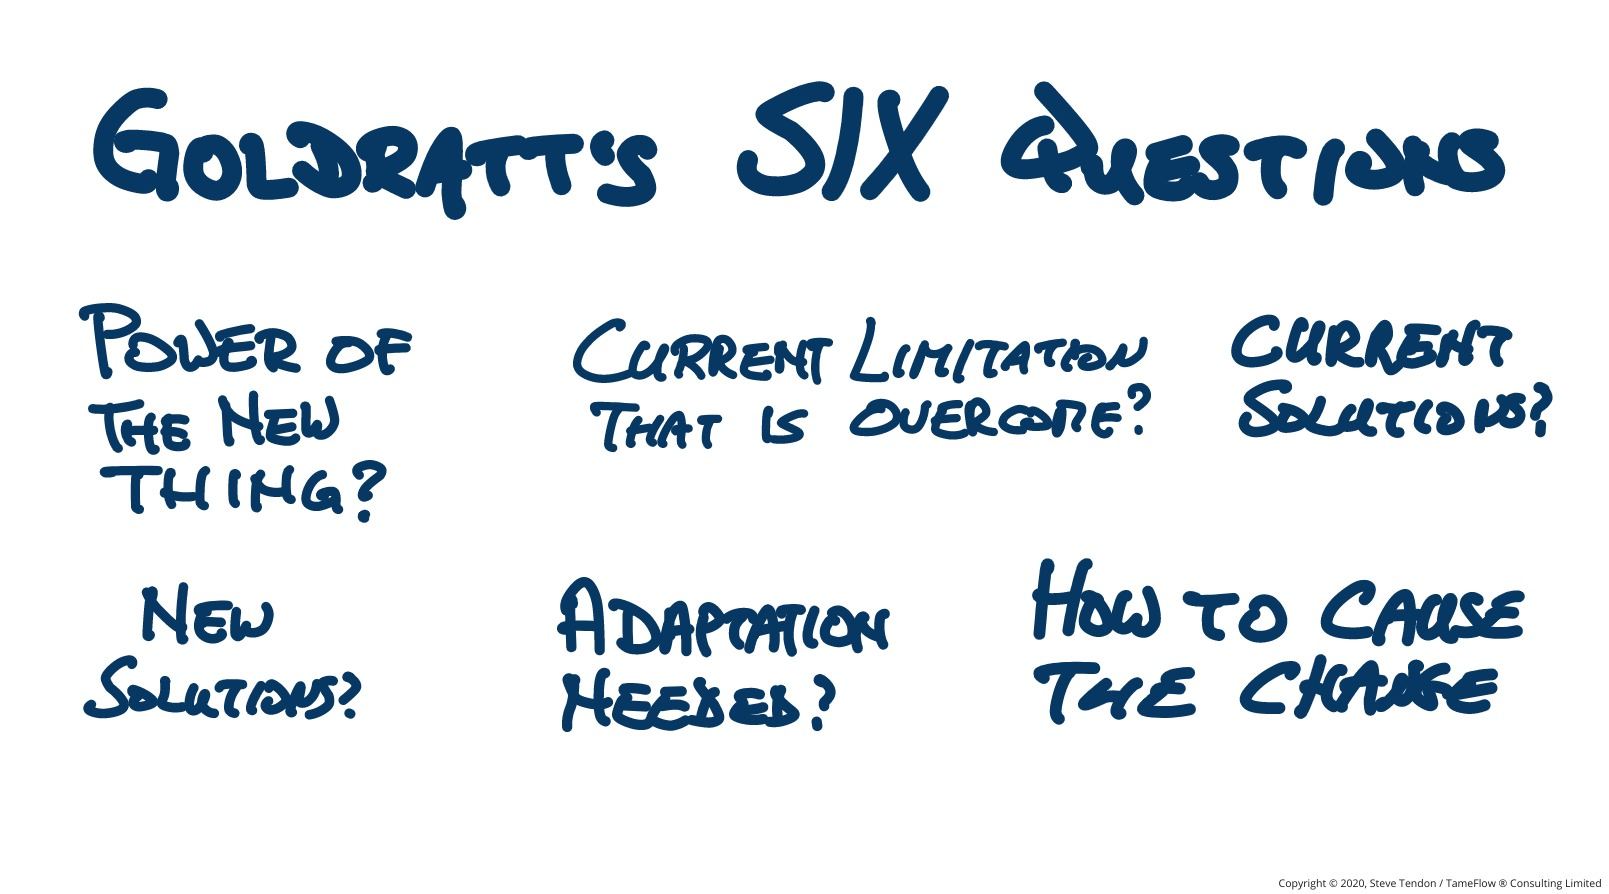 Goldratt's Six Questions